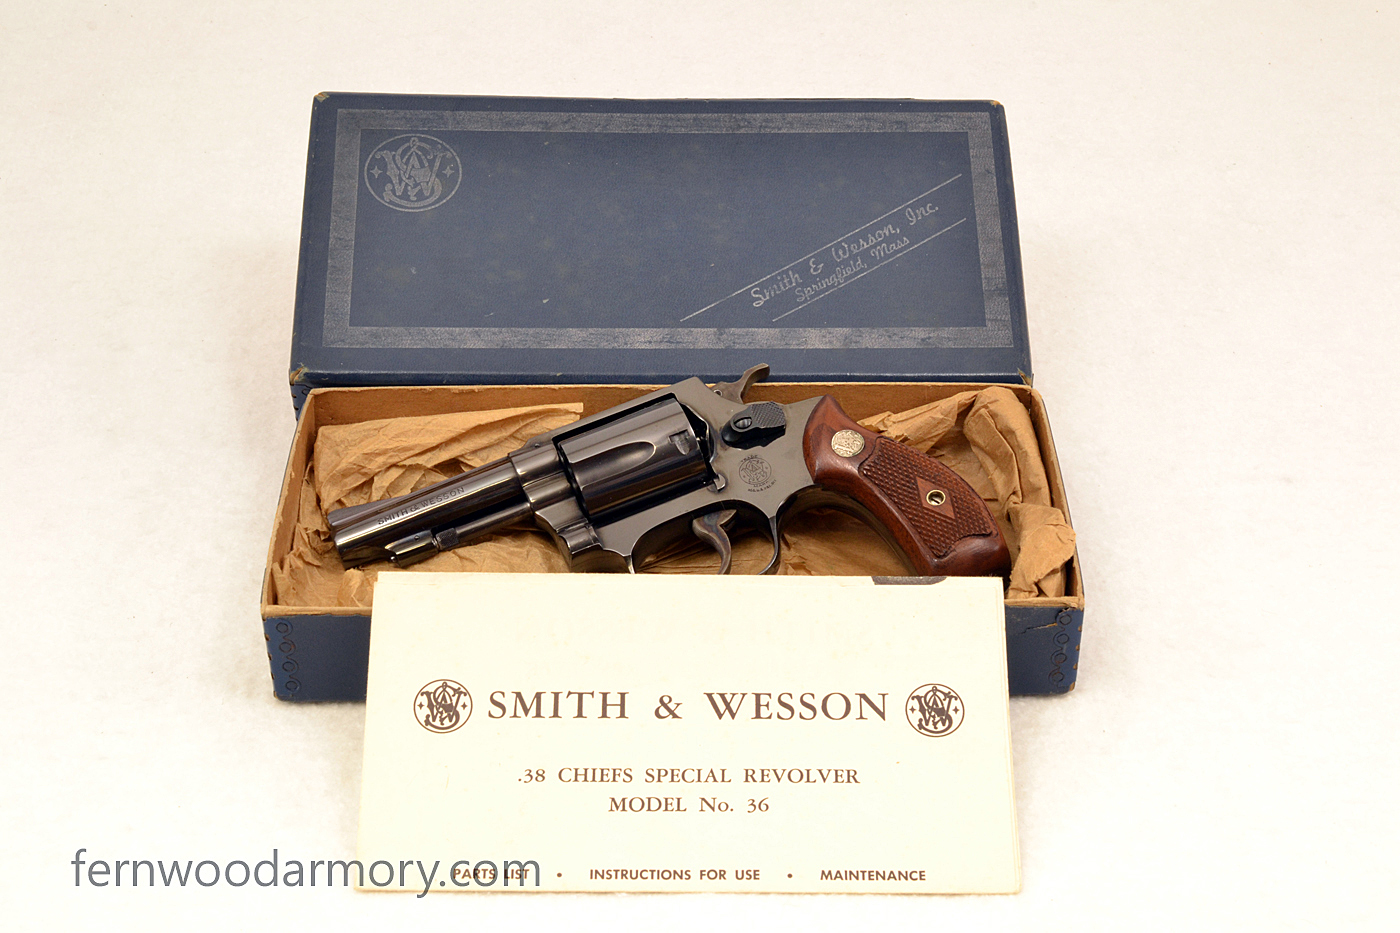 smith and wesson model 36 serial number date of manufacture